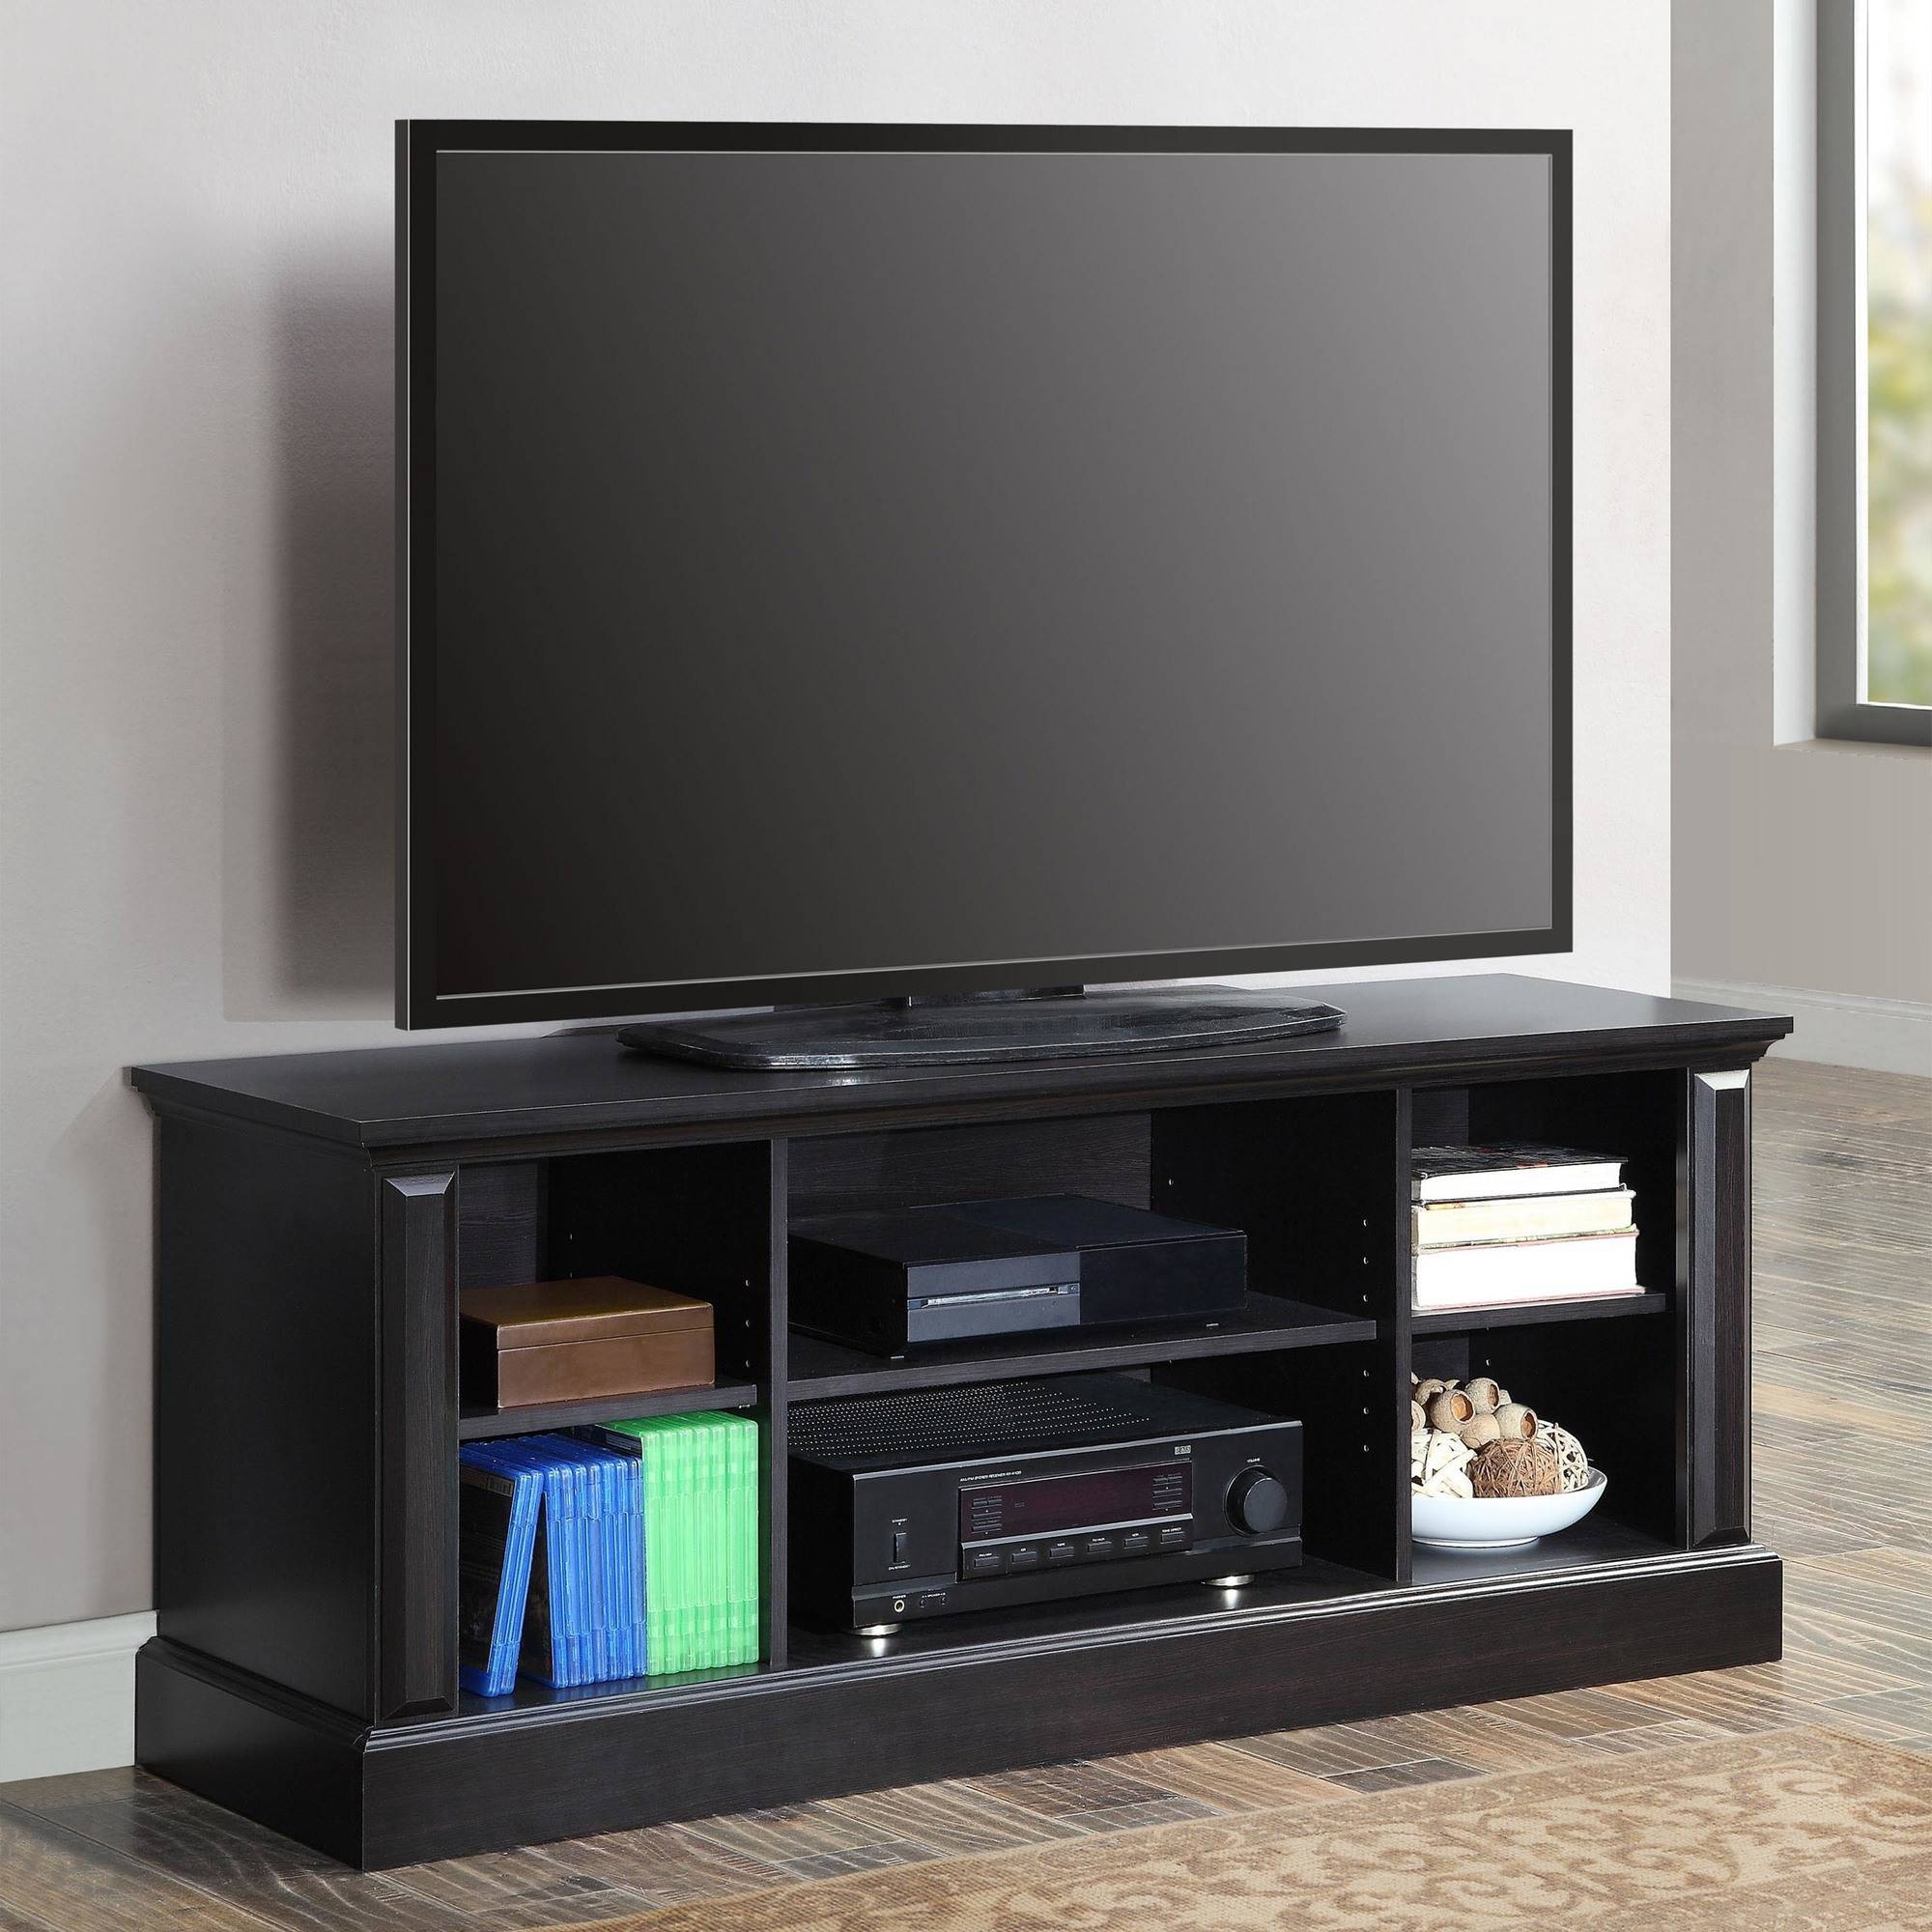 "Mainstays TV Console for TVs up to 60"", Espresso Finish"